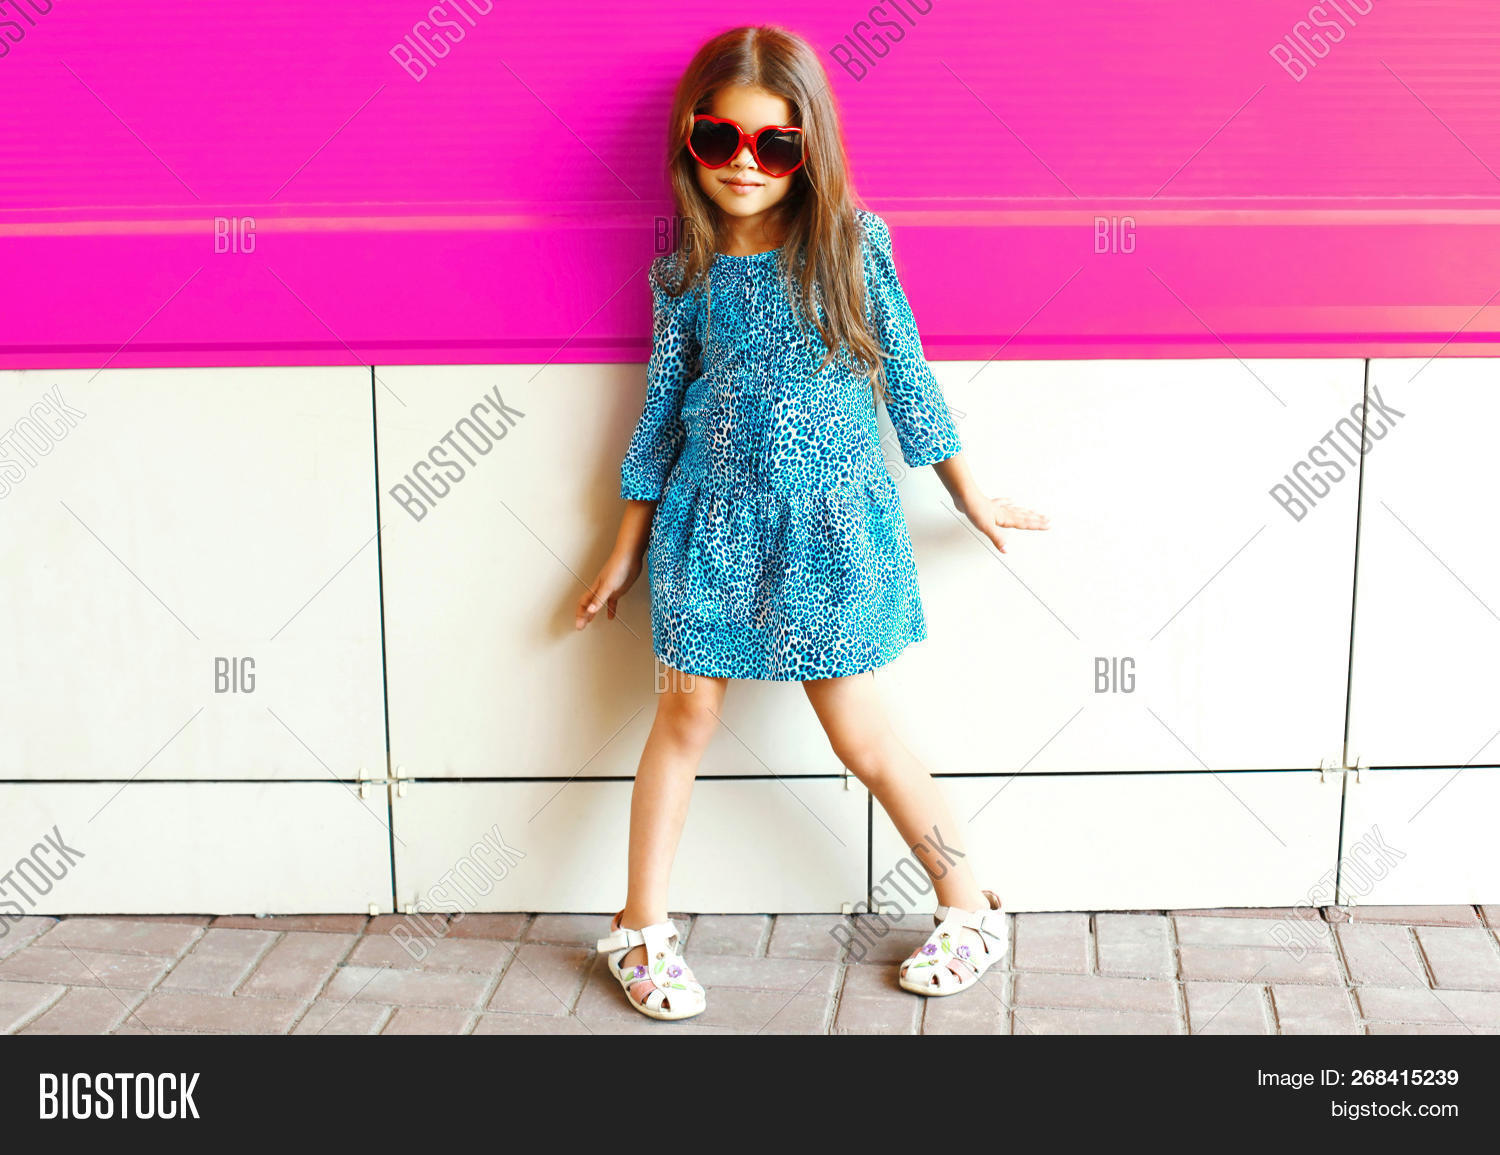 4c55839c6c40 Beautiful little girl child posing on city street on colorful pink wall  background